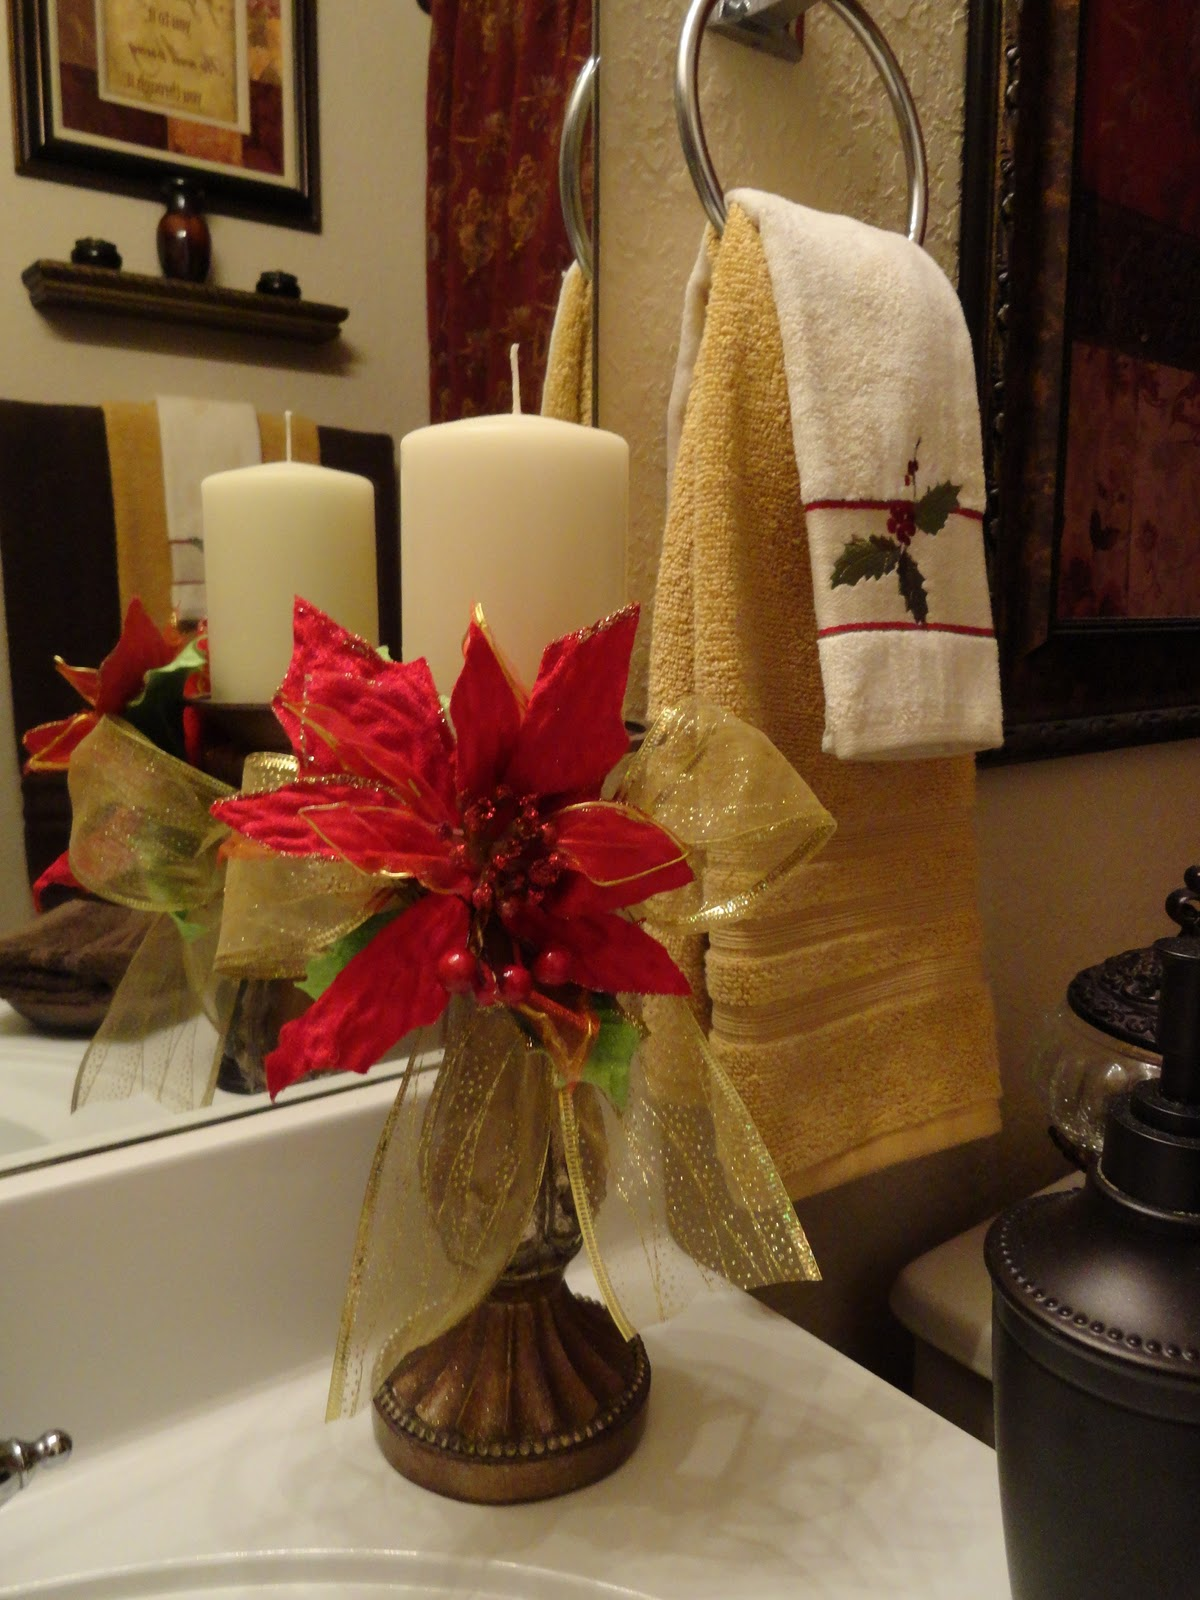 Our Home Away From Home: A TOUCH OF CHRISTMAS IN THE GUEST